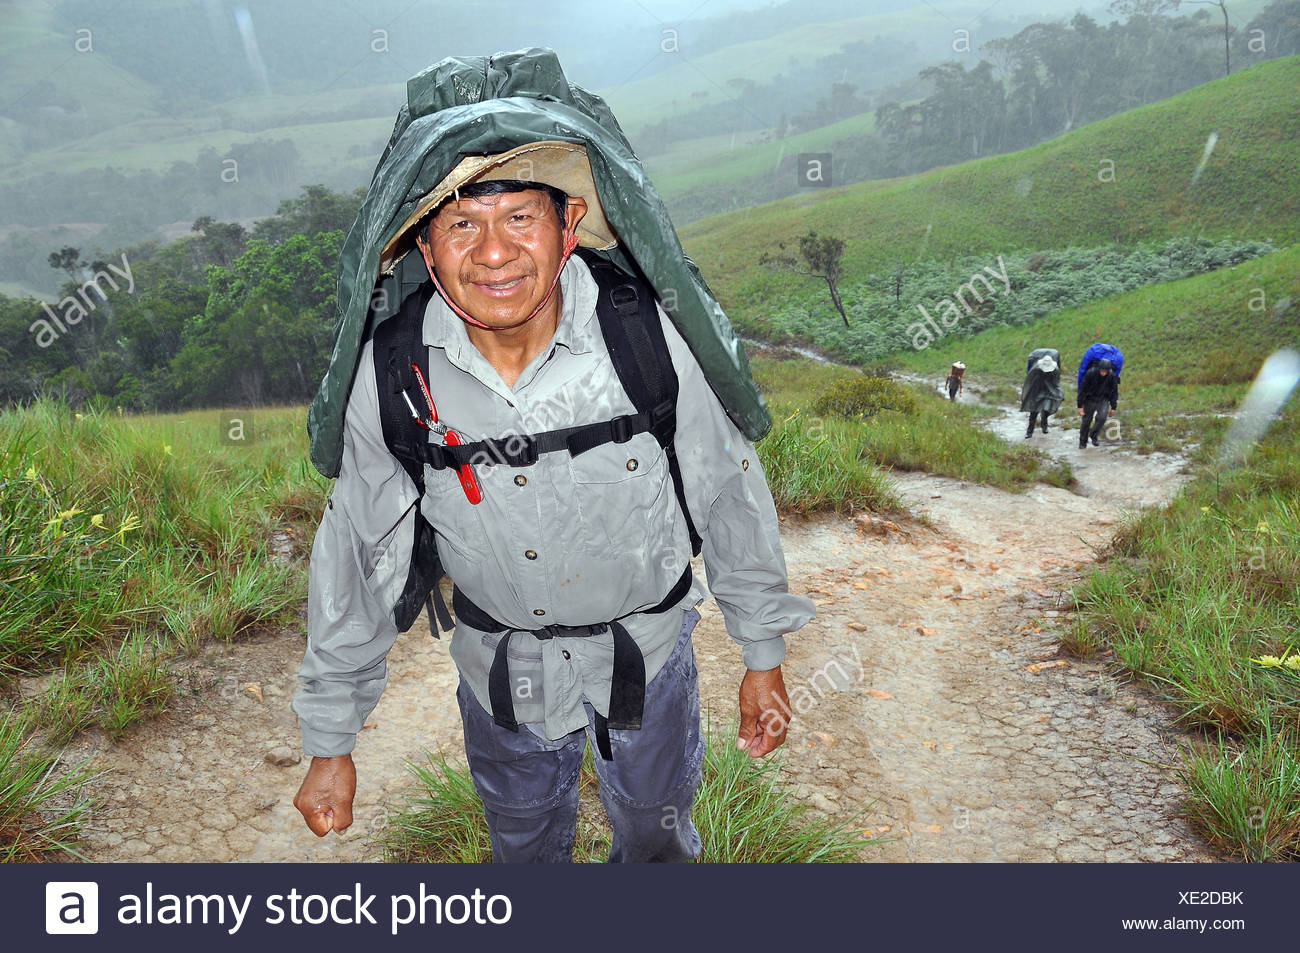 Mountaineer during a strenuous hike in the rain, Mount Roraima, table mountain, border triangle of Brazil, Venezuela and Guyana - Stock Image